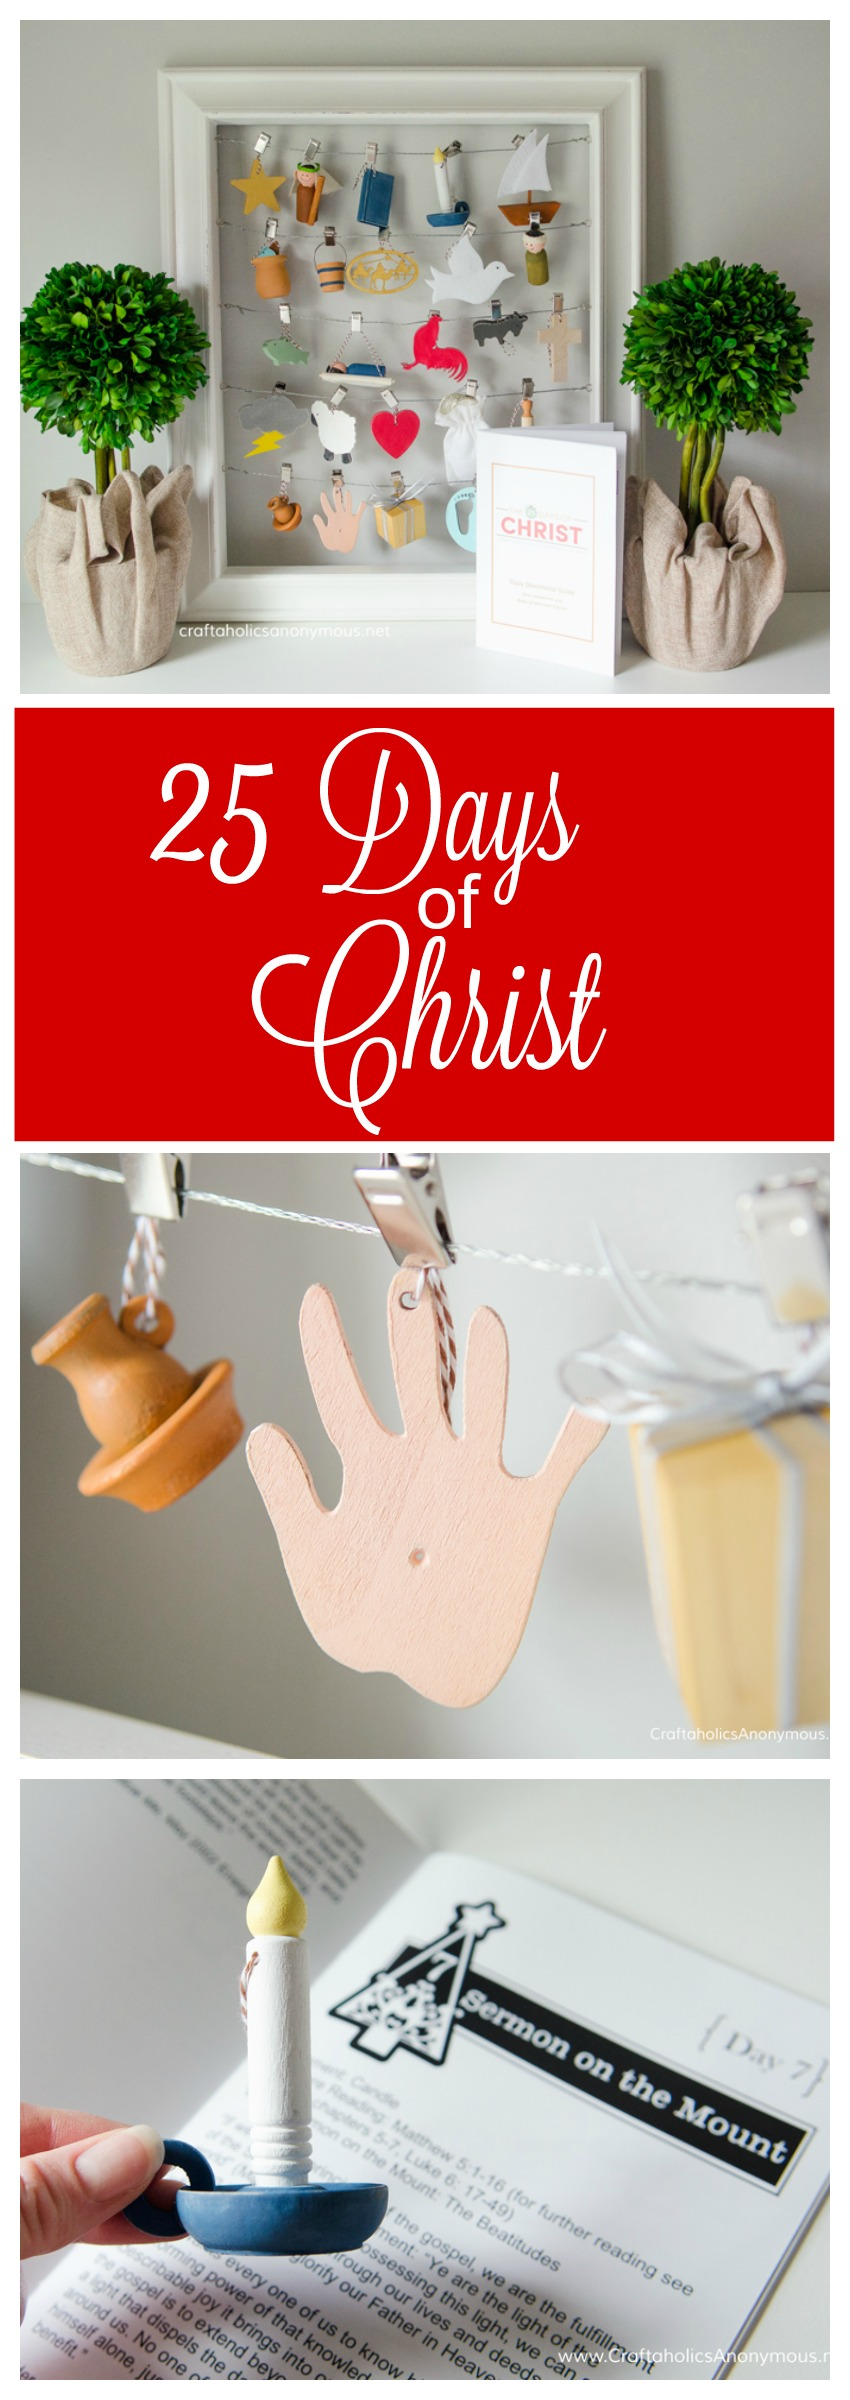 25 Days of Christ || Help your family keep Christ at the center of Christmas with this new family tradition!